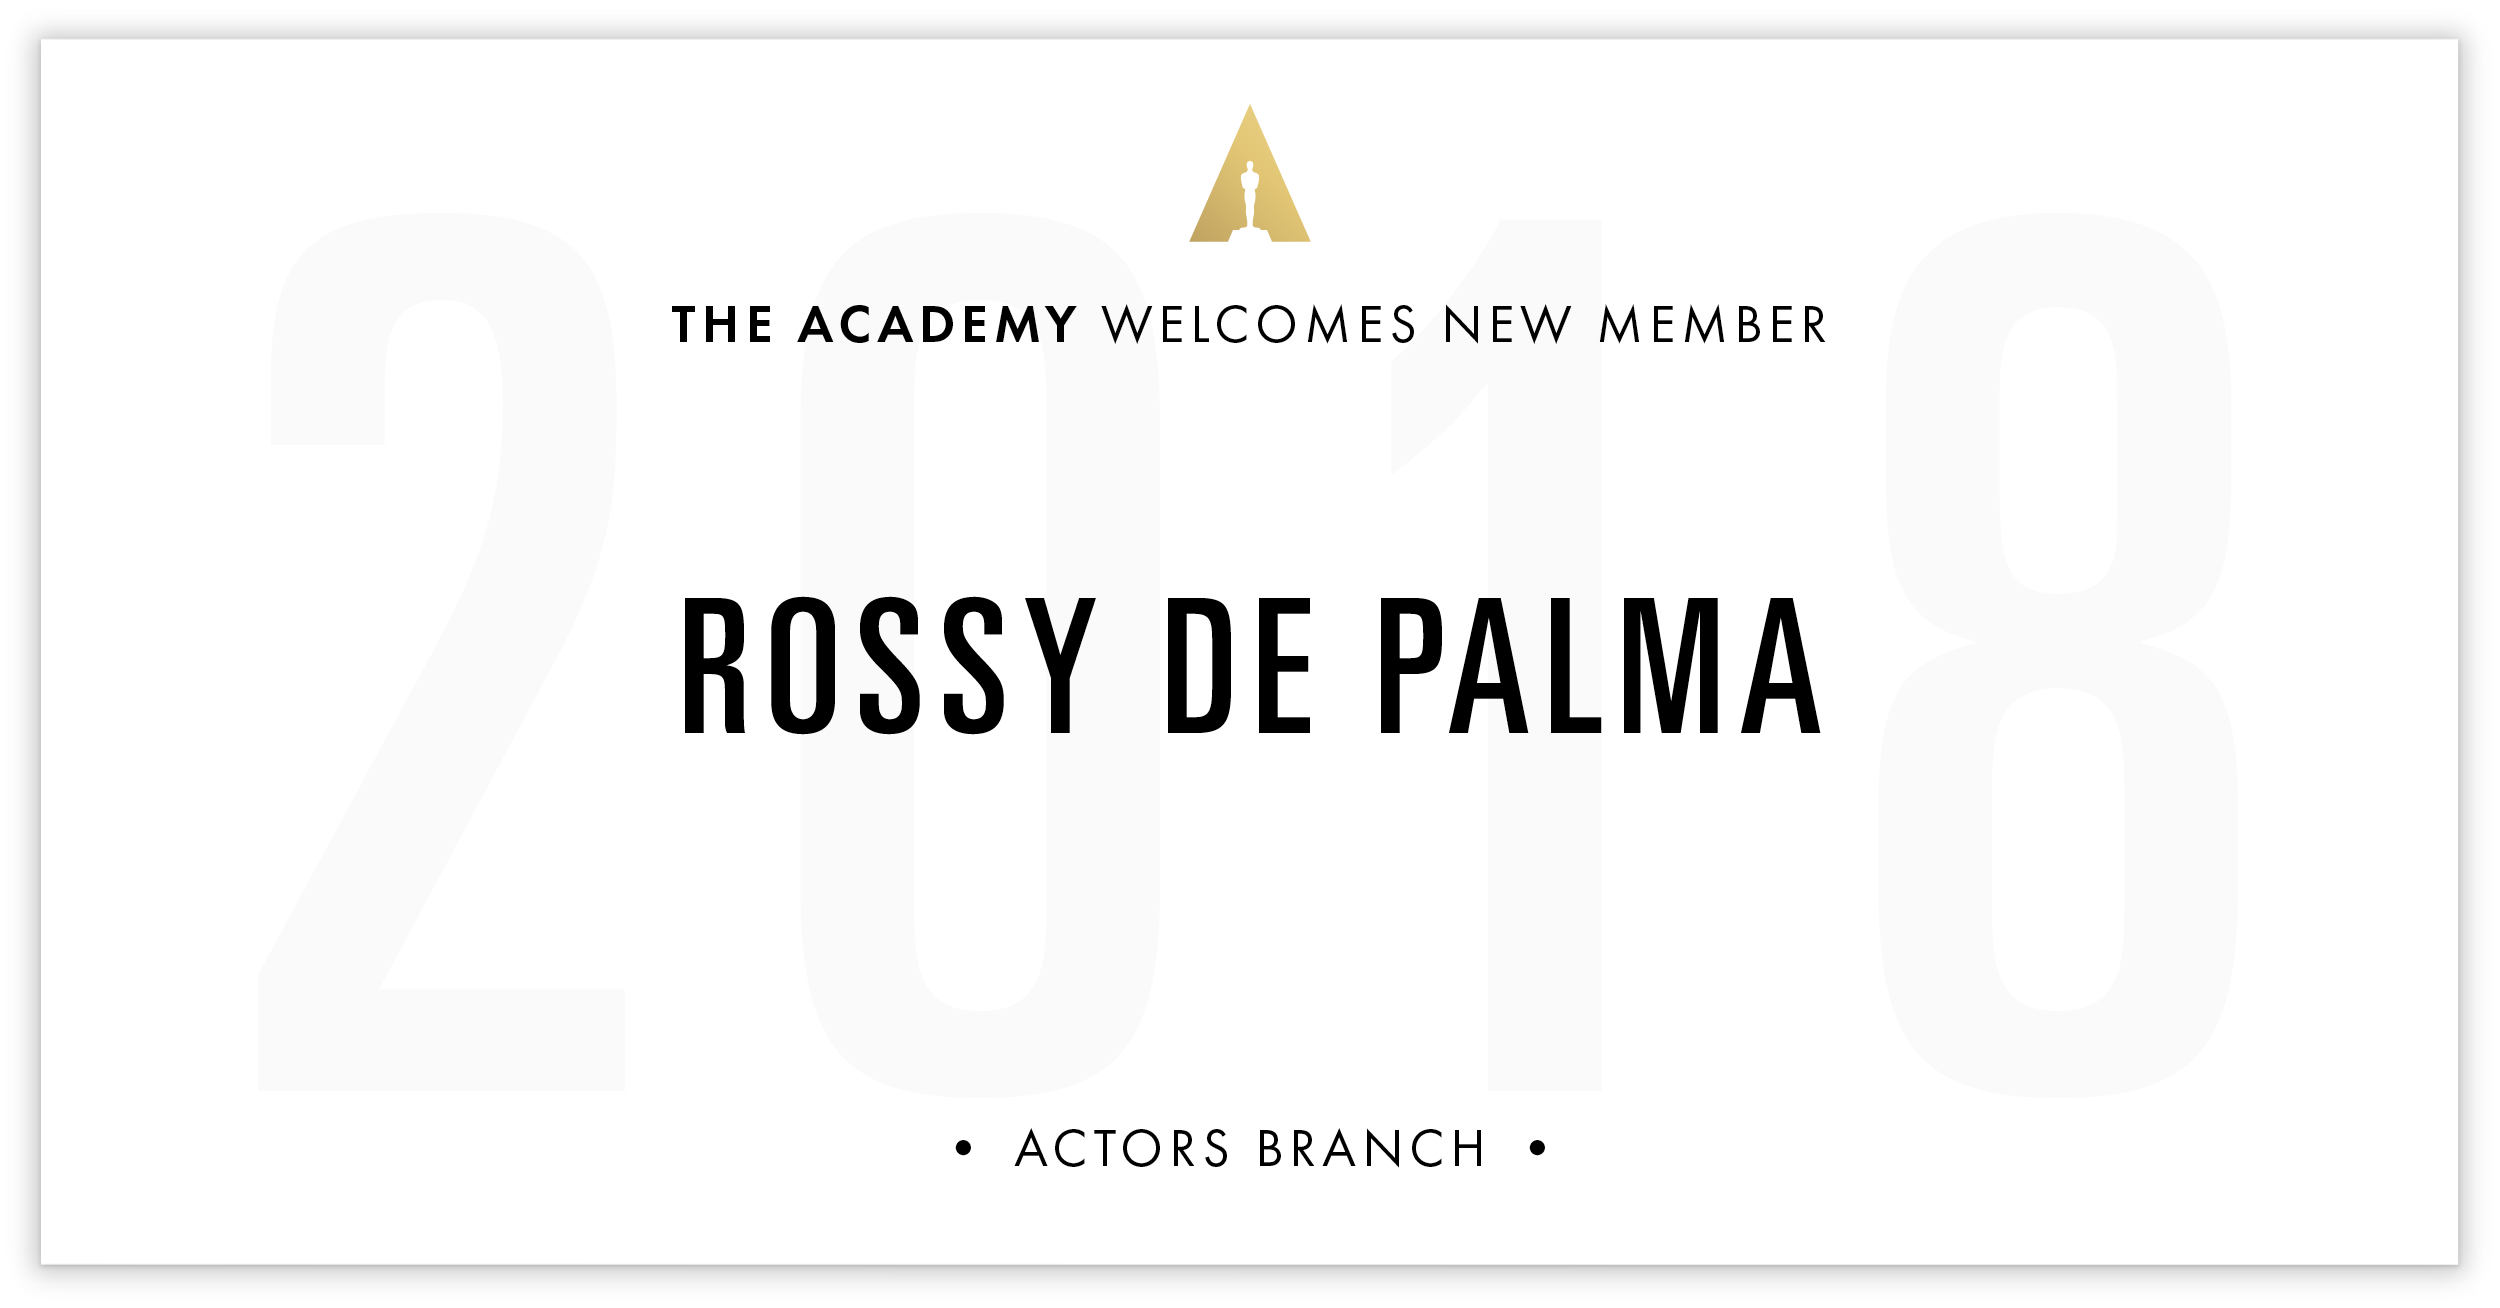 Rossy De Palma is invited!